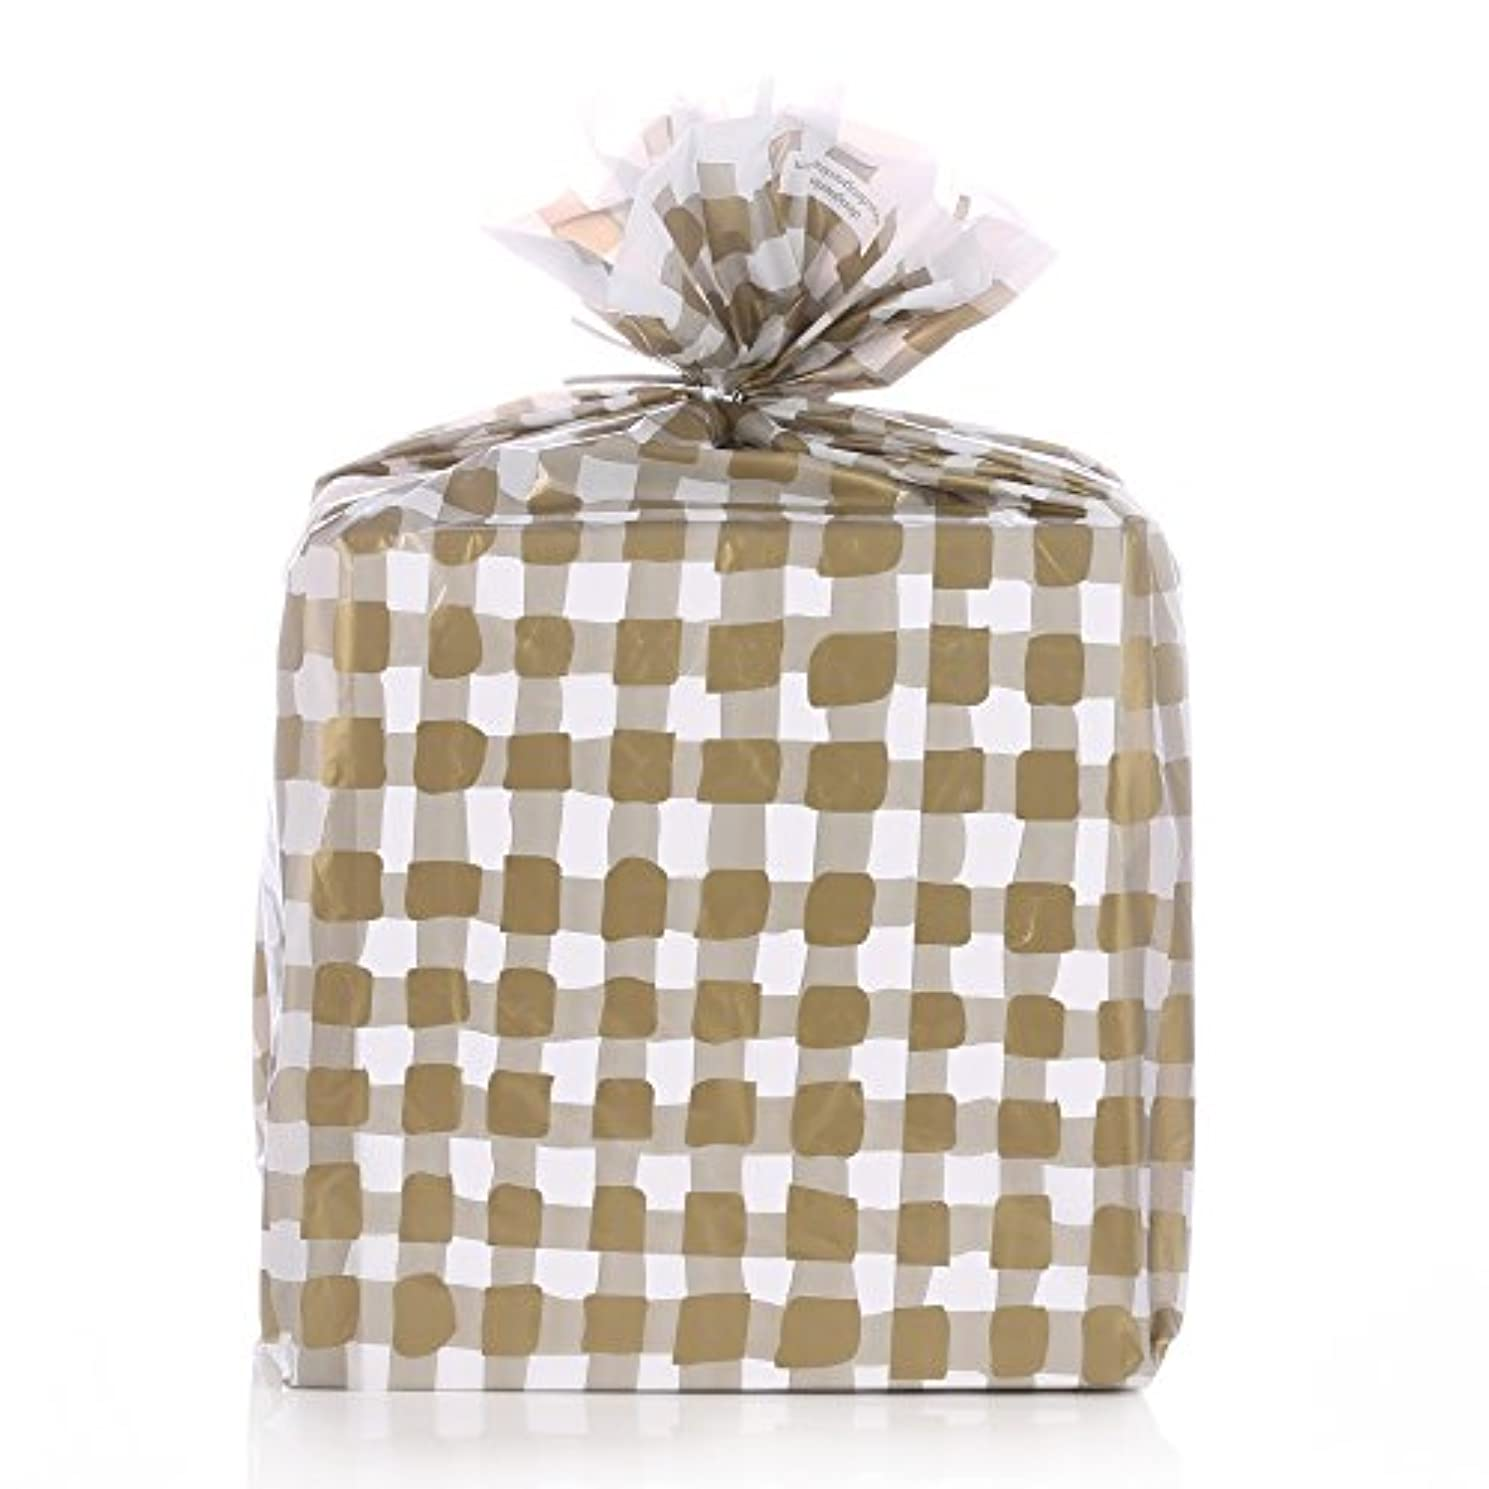 Reusable Gold Gingham Plastic Gift Wrap Bags - Reuse as Pretty Trash Bags - 10 Count - 21